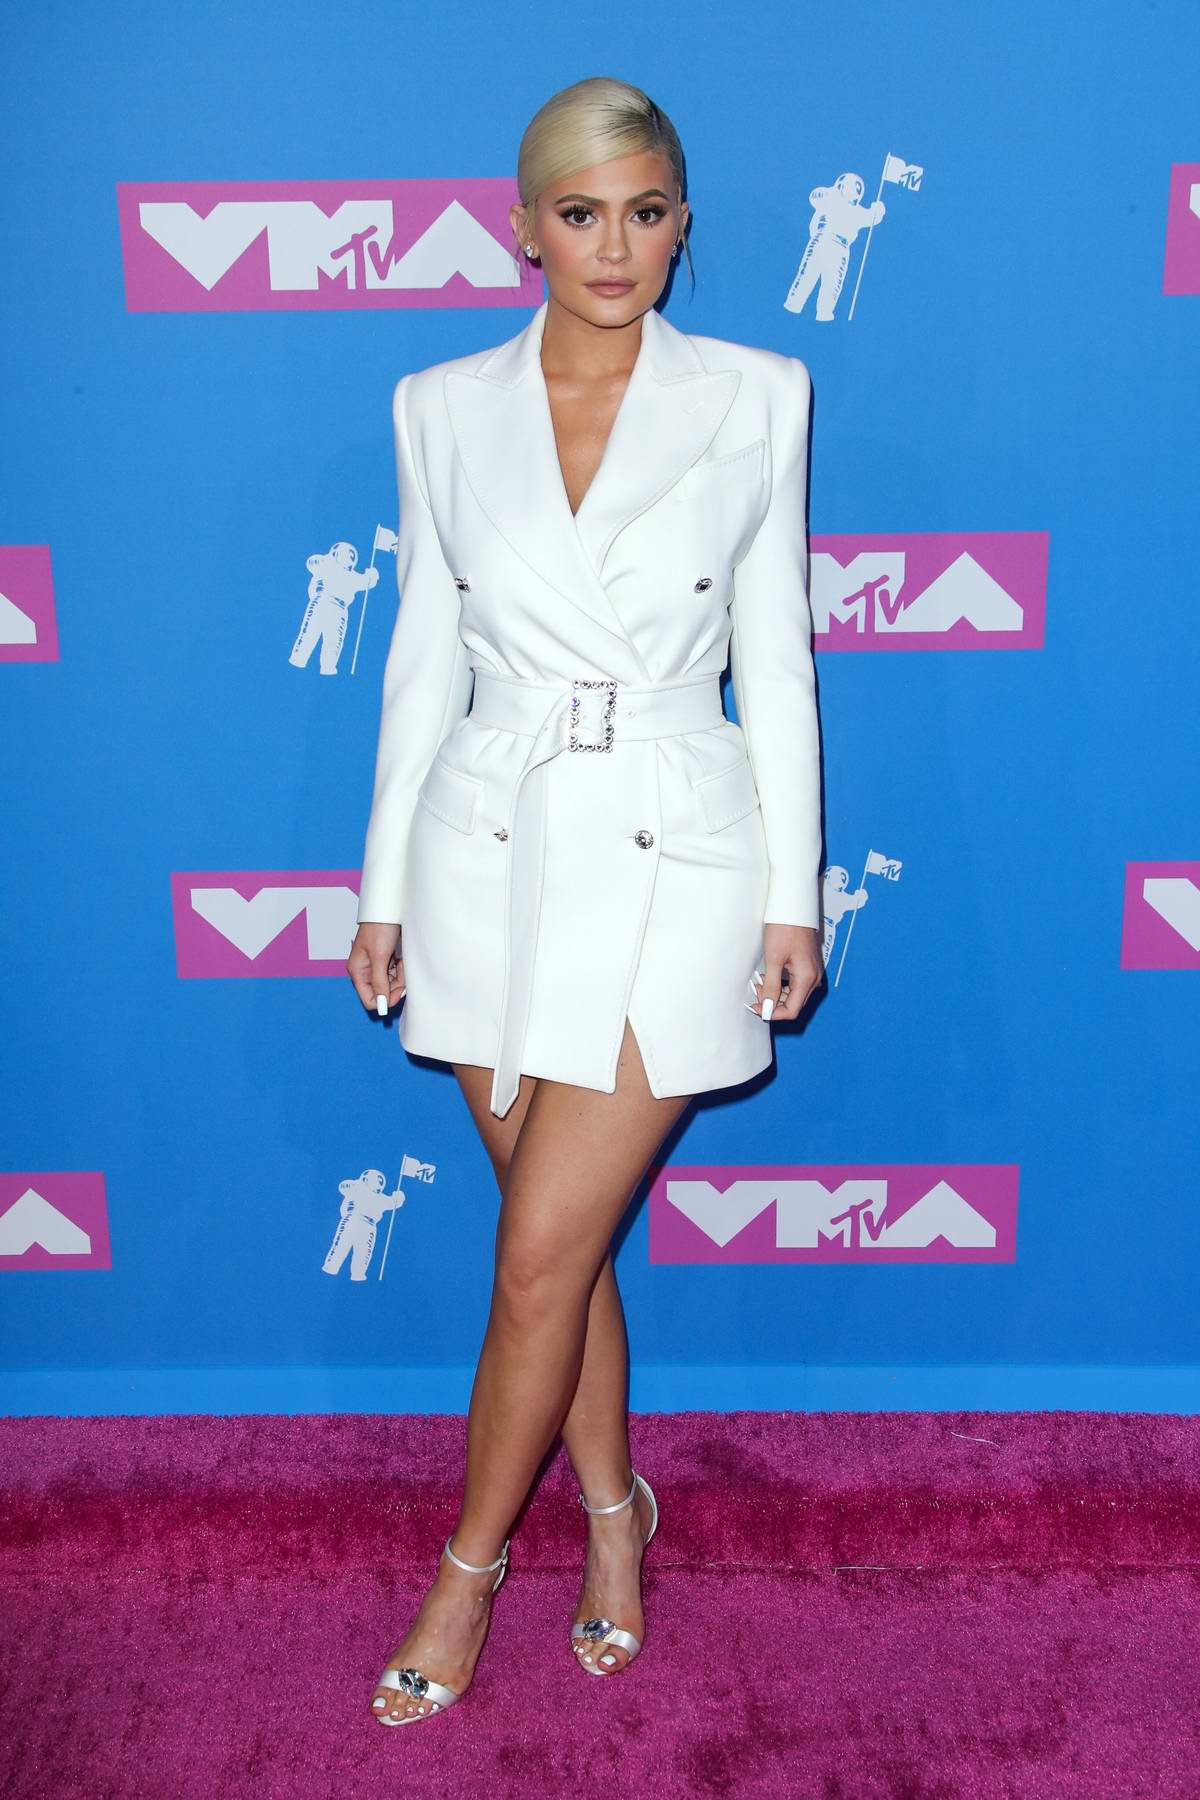 Kylie Jenner attends 2018 MTV Video Music Awards (MTV VMA 2018) at Radio City Music Hall in New York City